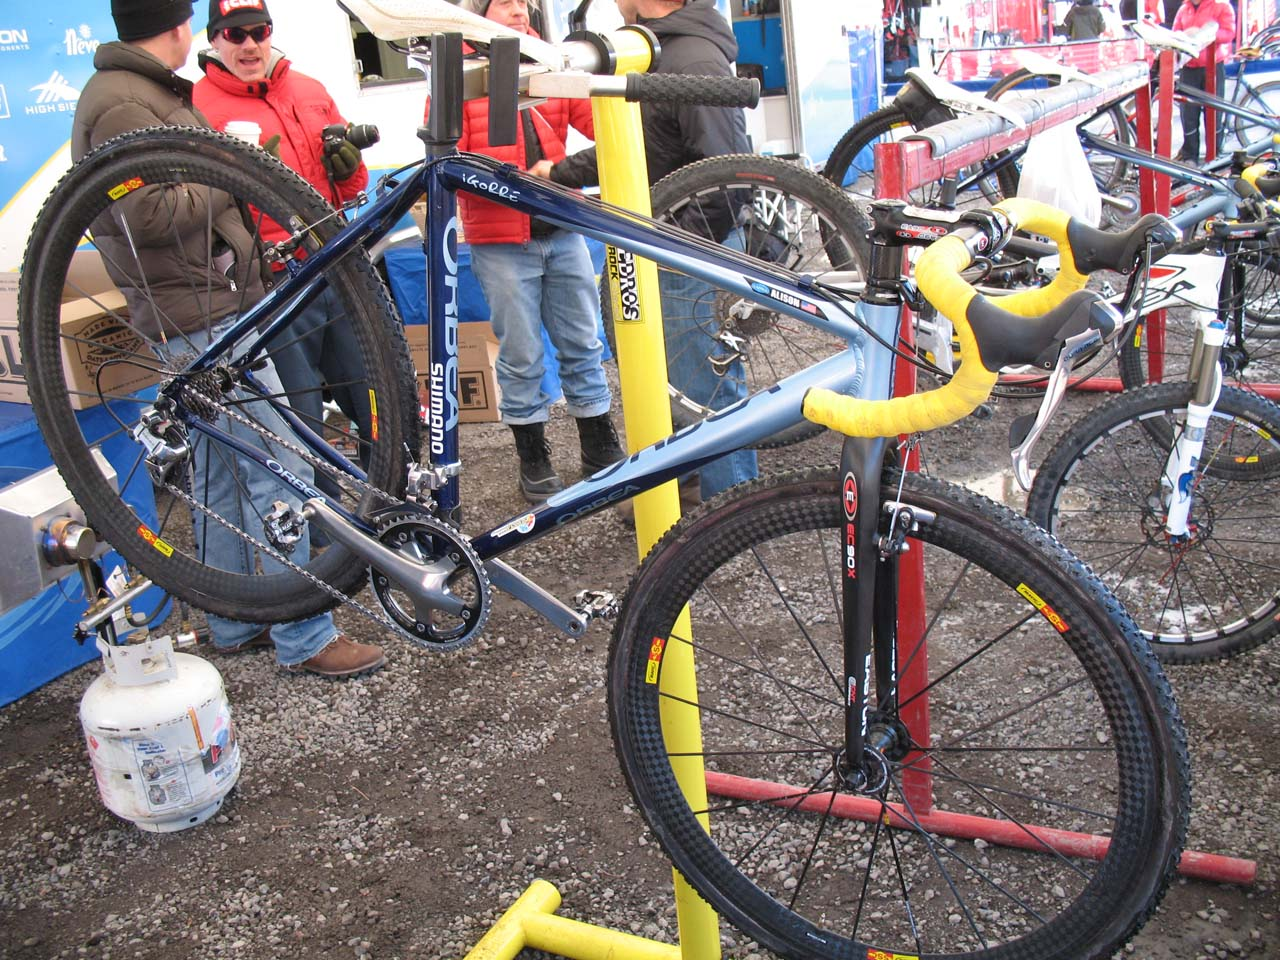 The Orbea\'s bi-ovalized downtube increases strength and stiffness at the head tube and bottom bracket junctions. ? Cyclocross Magazine